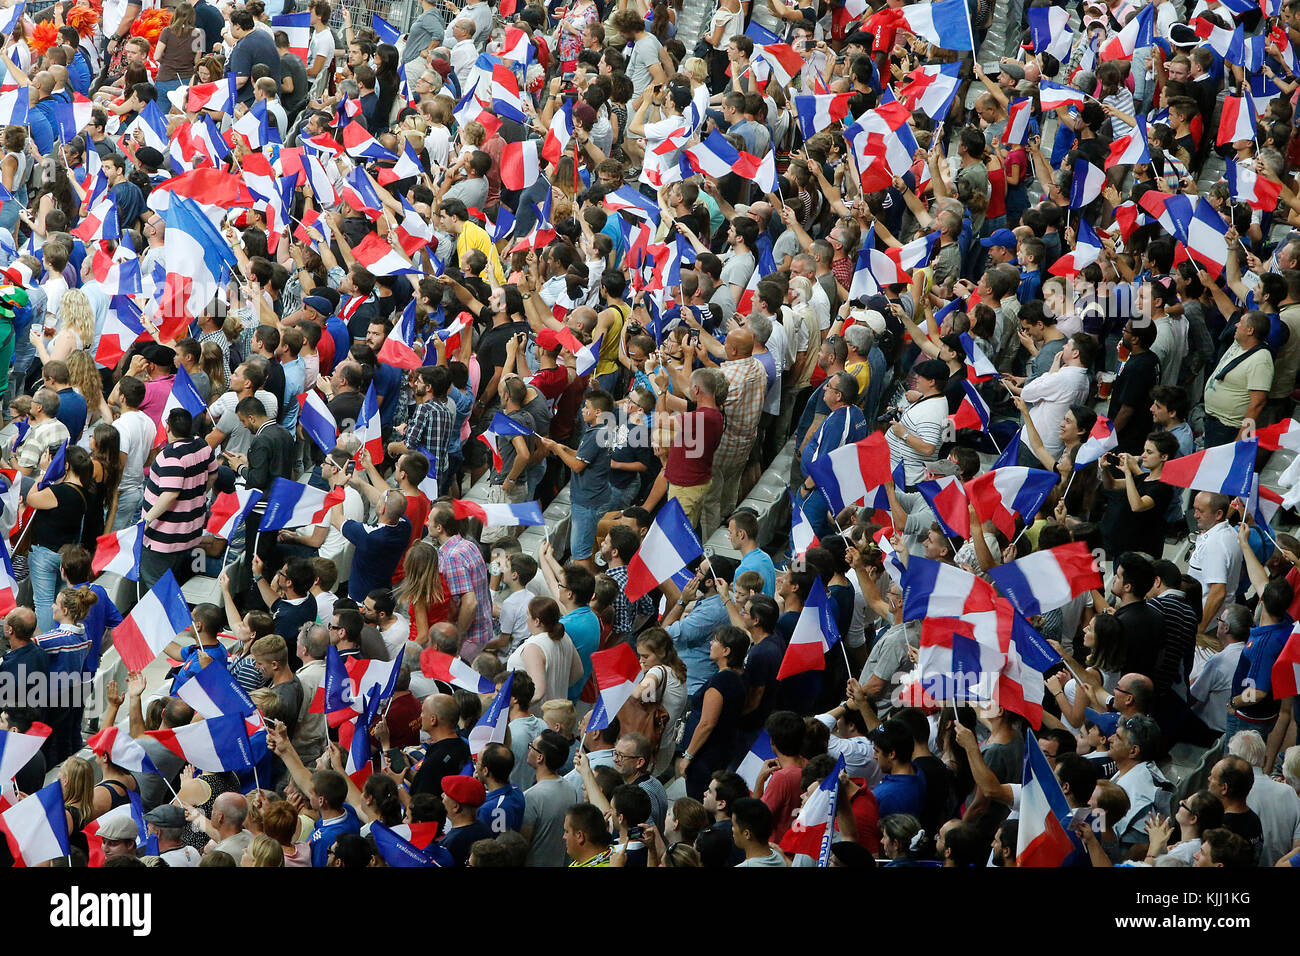 Rugby match at the Stade de France. French spectators. France. - Stock Image